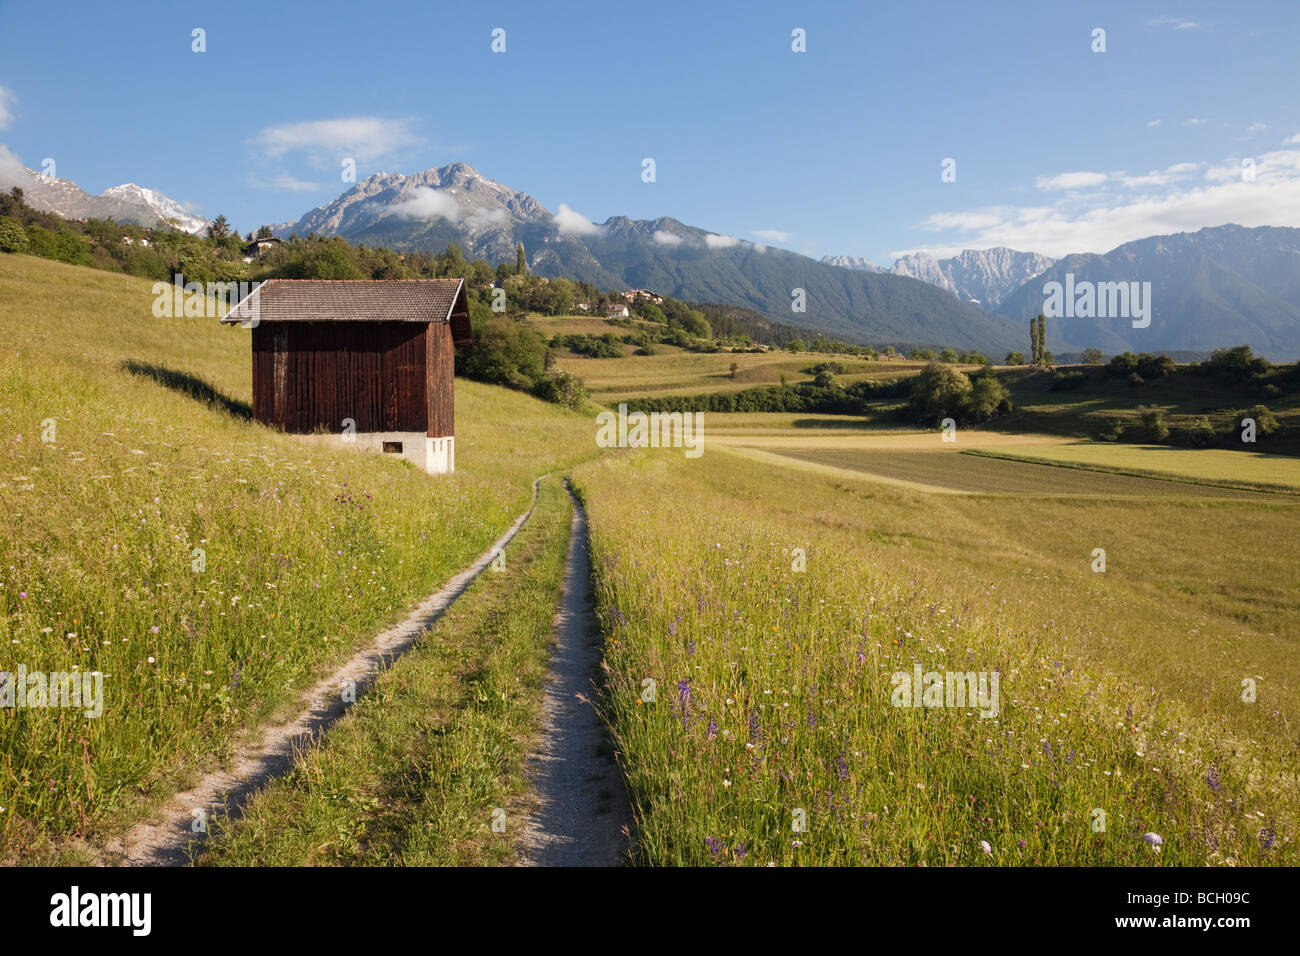 Imst Tyrol Austria Europe. Track and barn in summer Alpine flower meadows in green valley in early morning - Stock Image